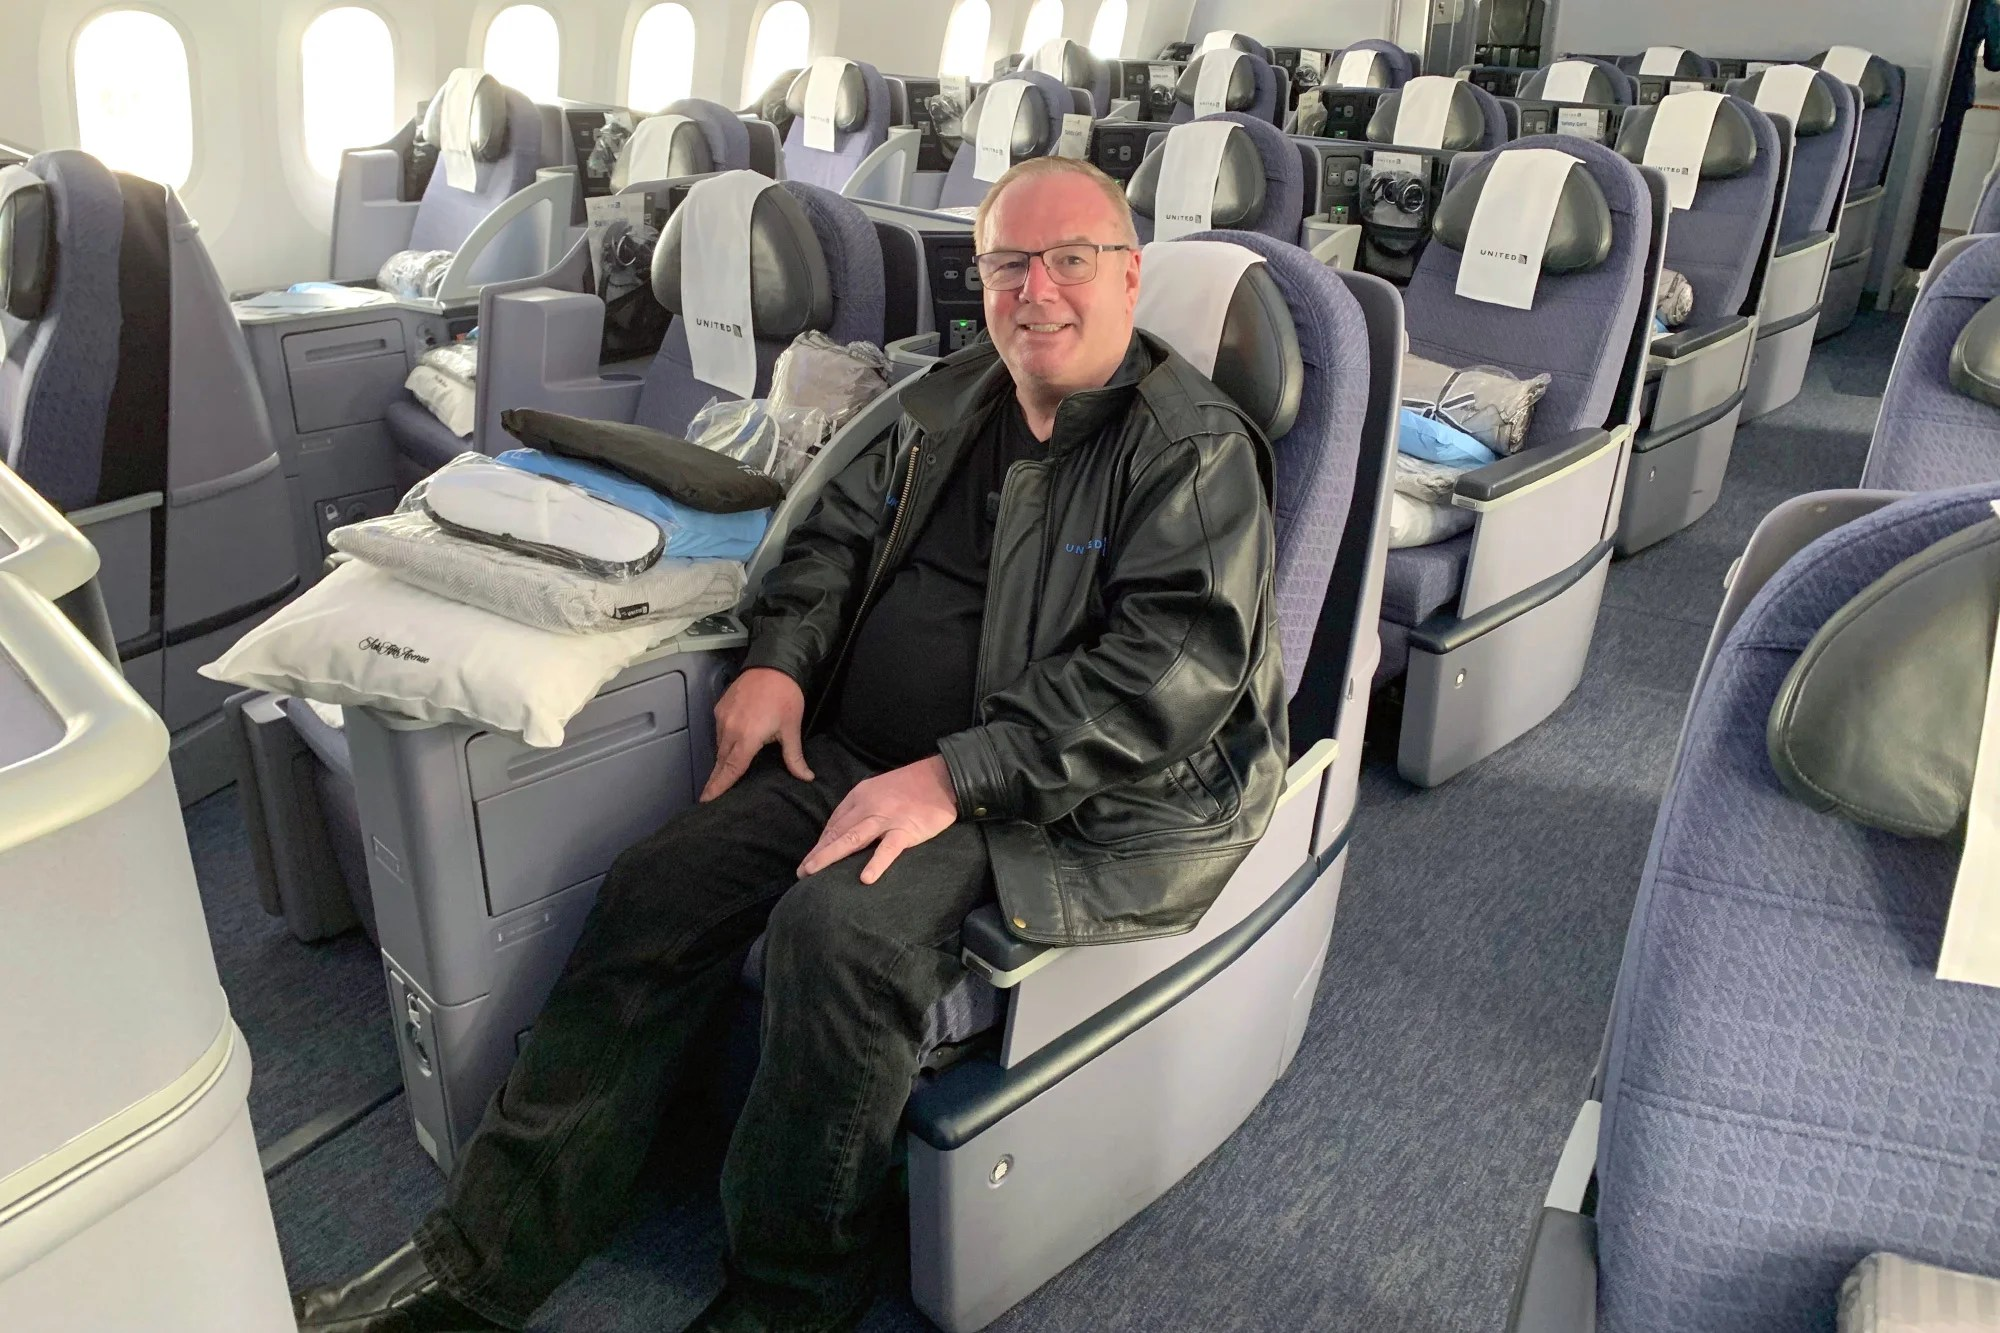 World's Most Frequent Flyer Beats 20-Million-Mile Record